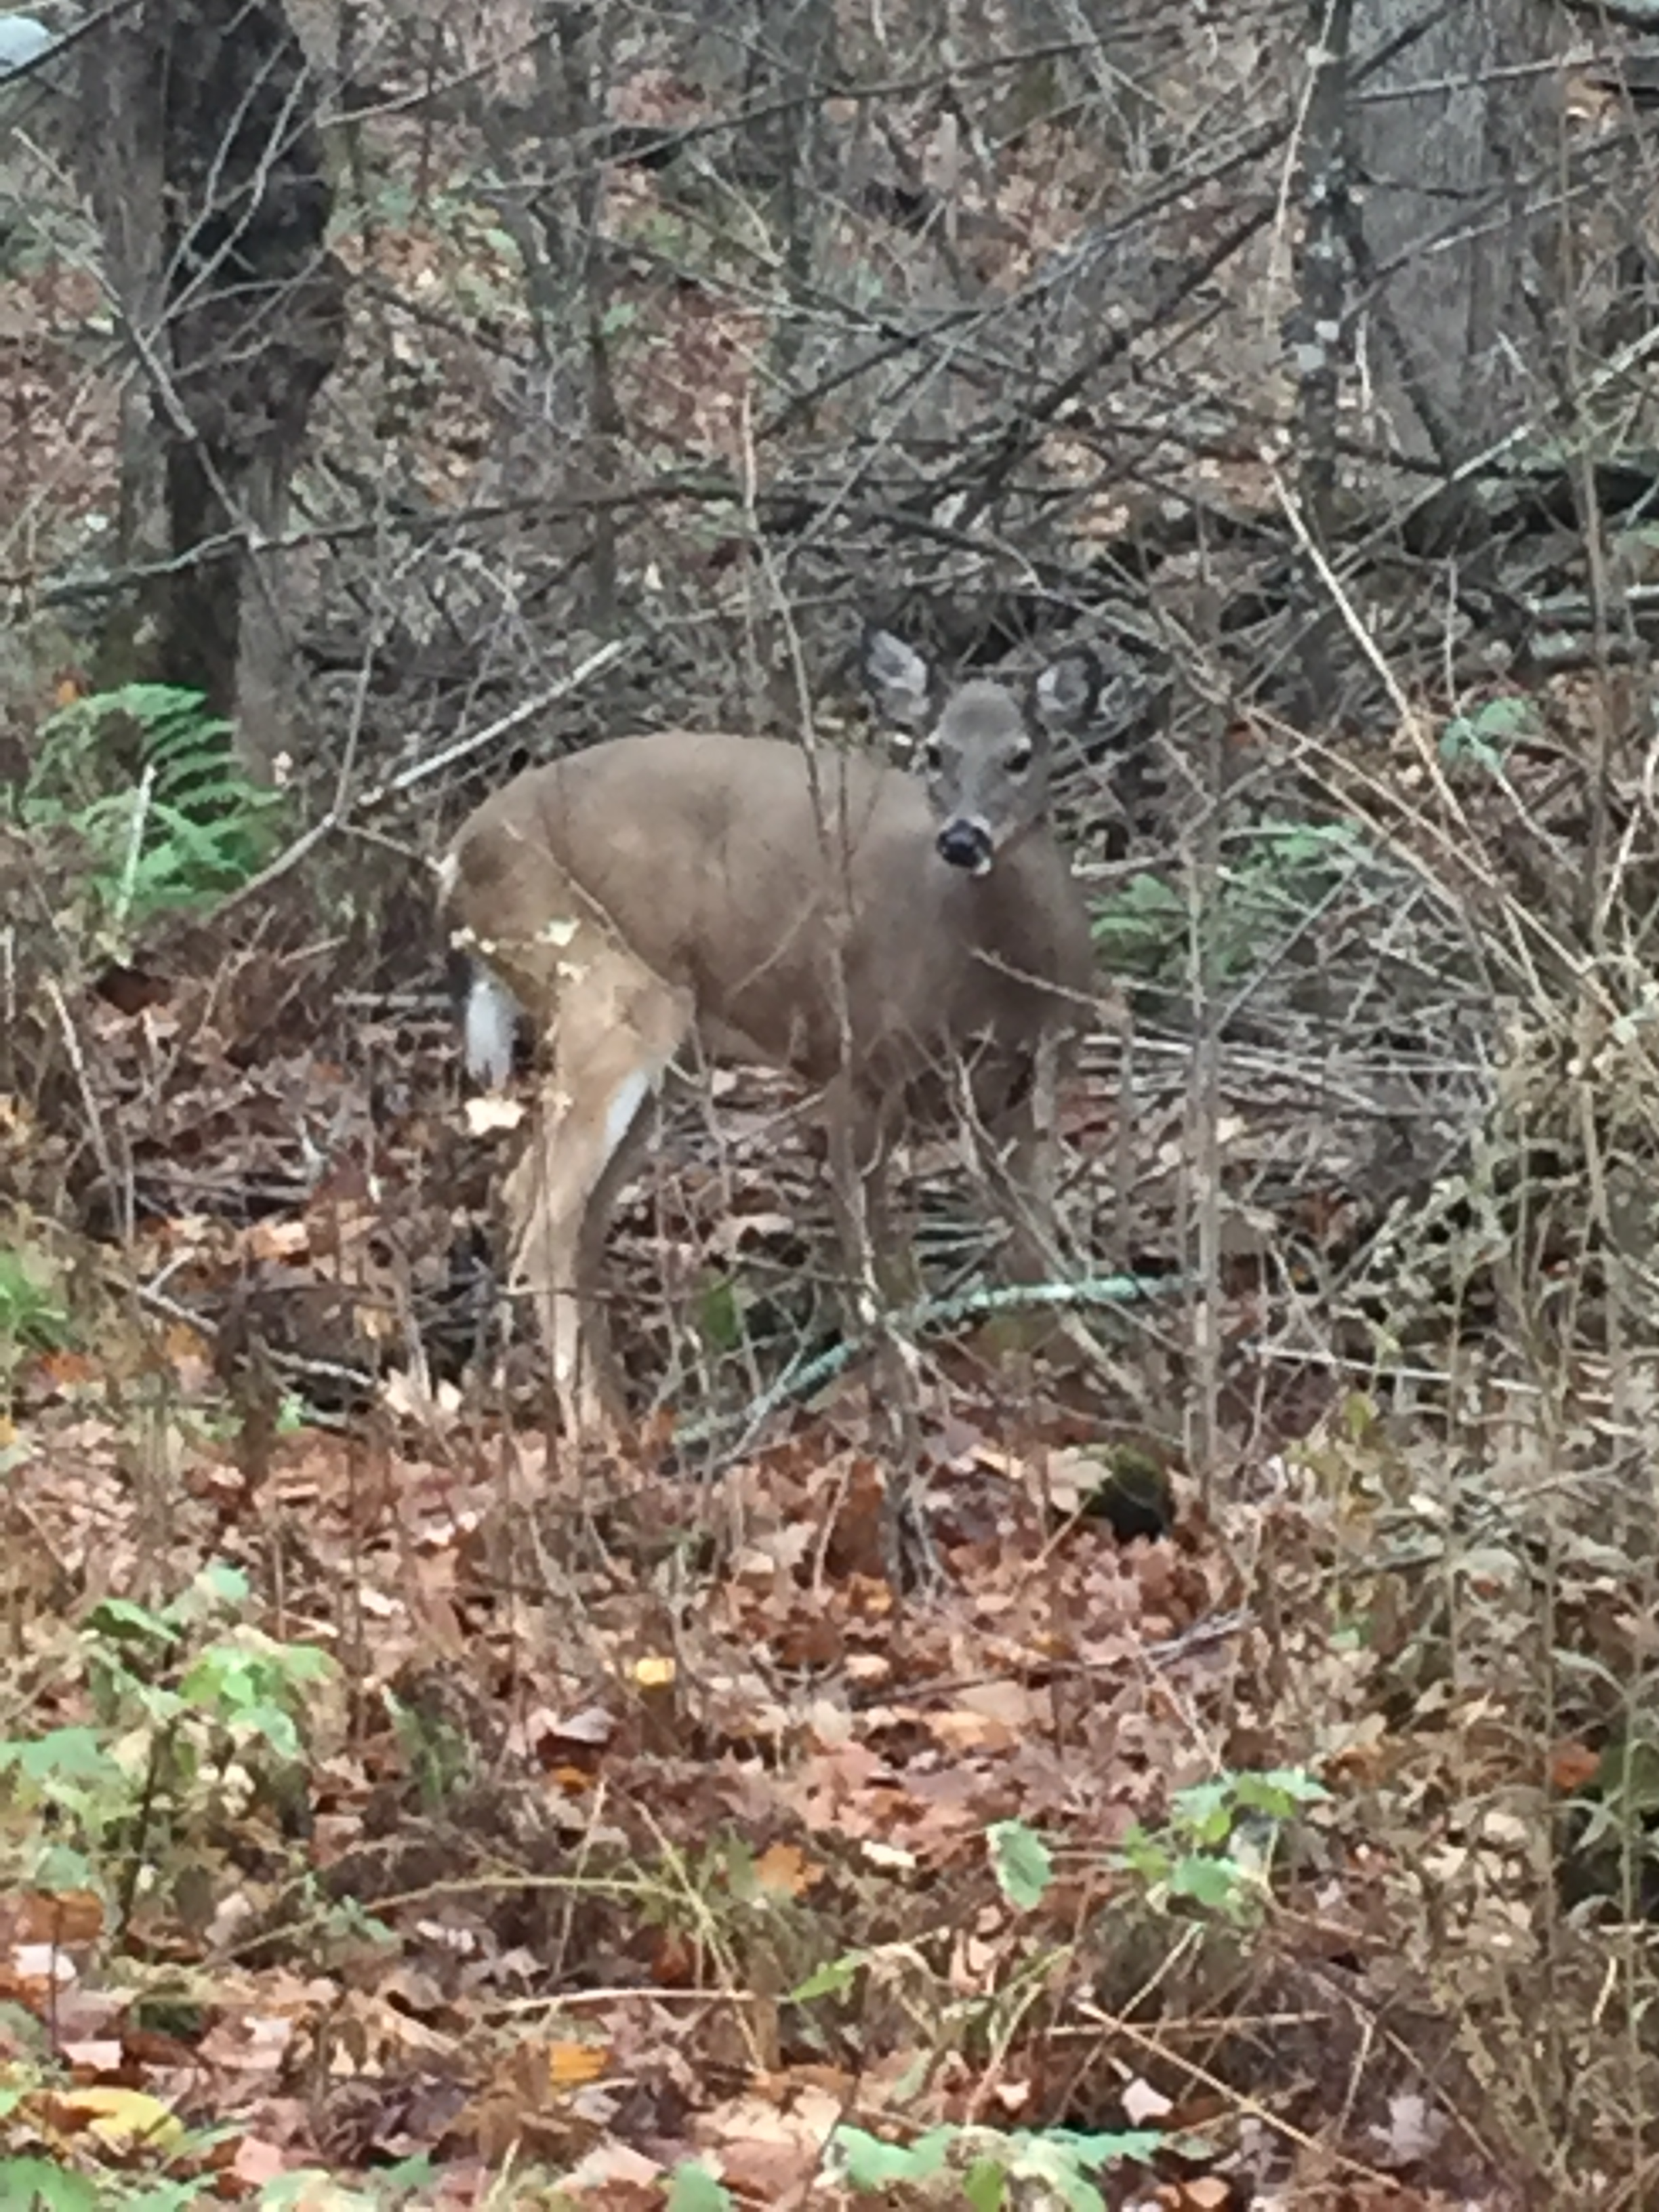 A White-tailed Deer I found while out for a hike.